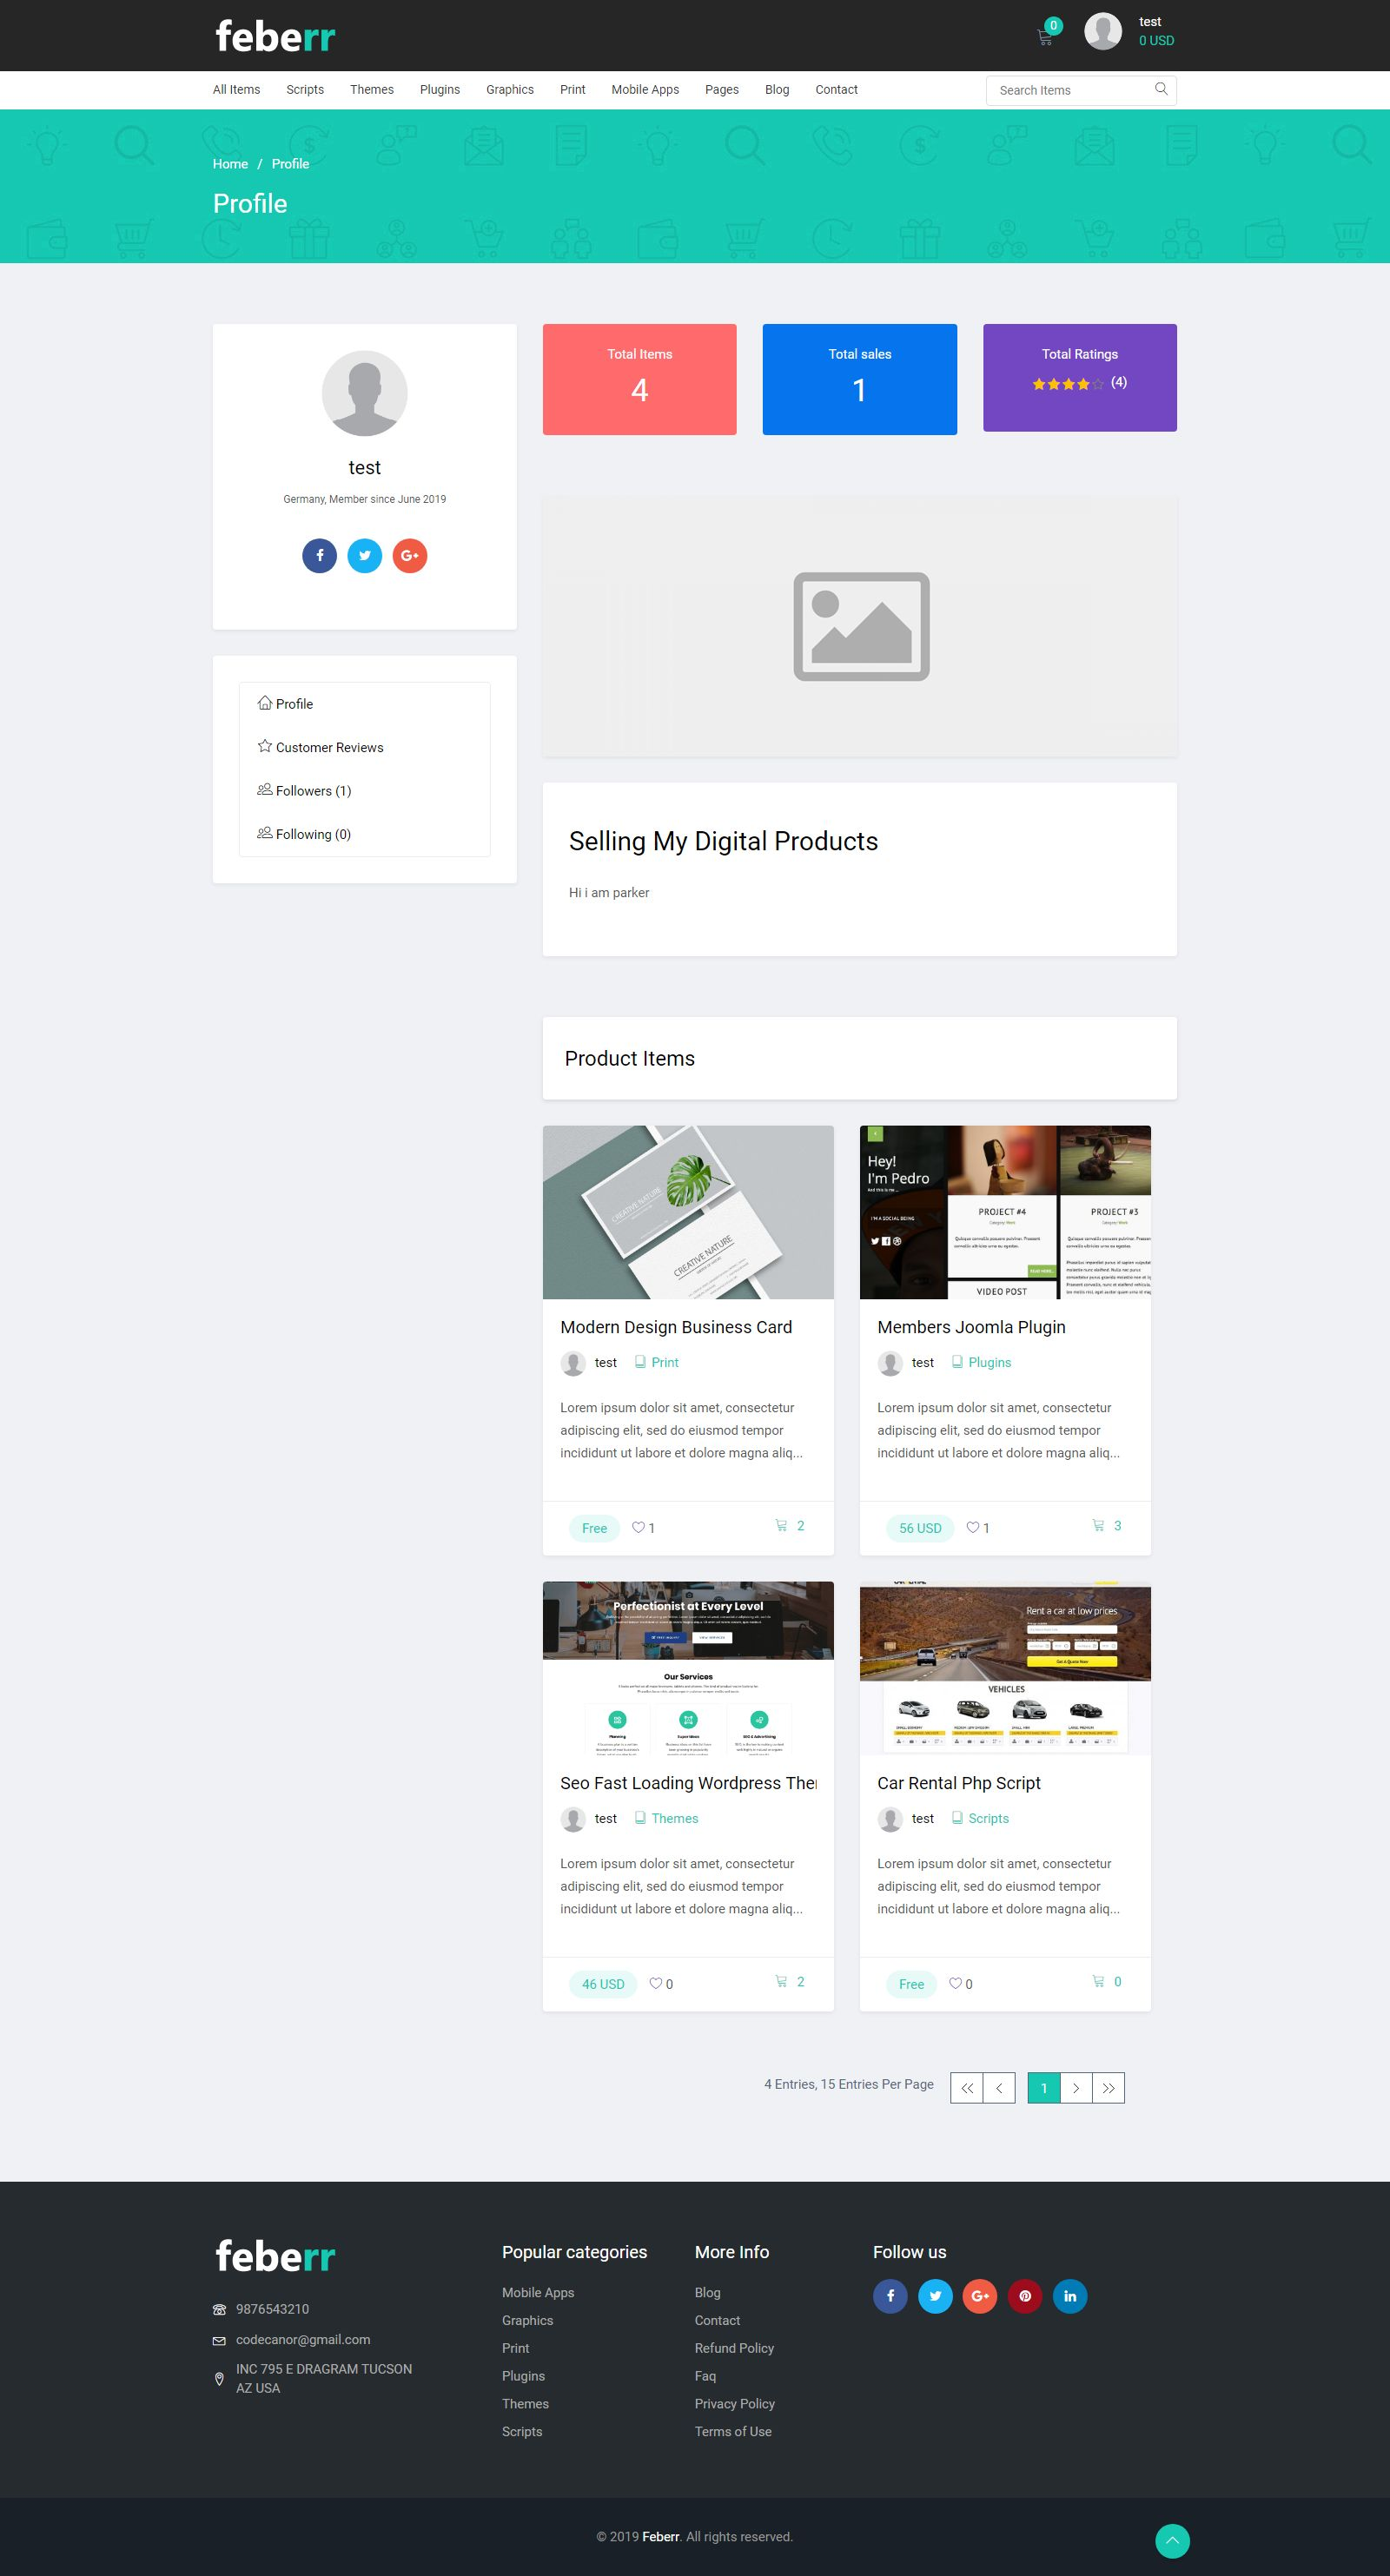 Feberr - Multivendor Digital Products Marketplace  Screenshot 5